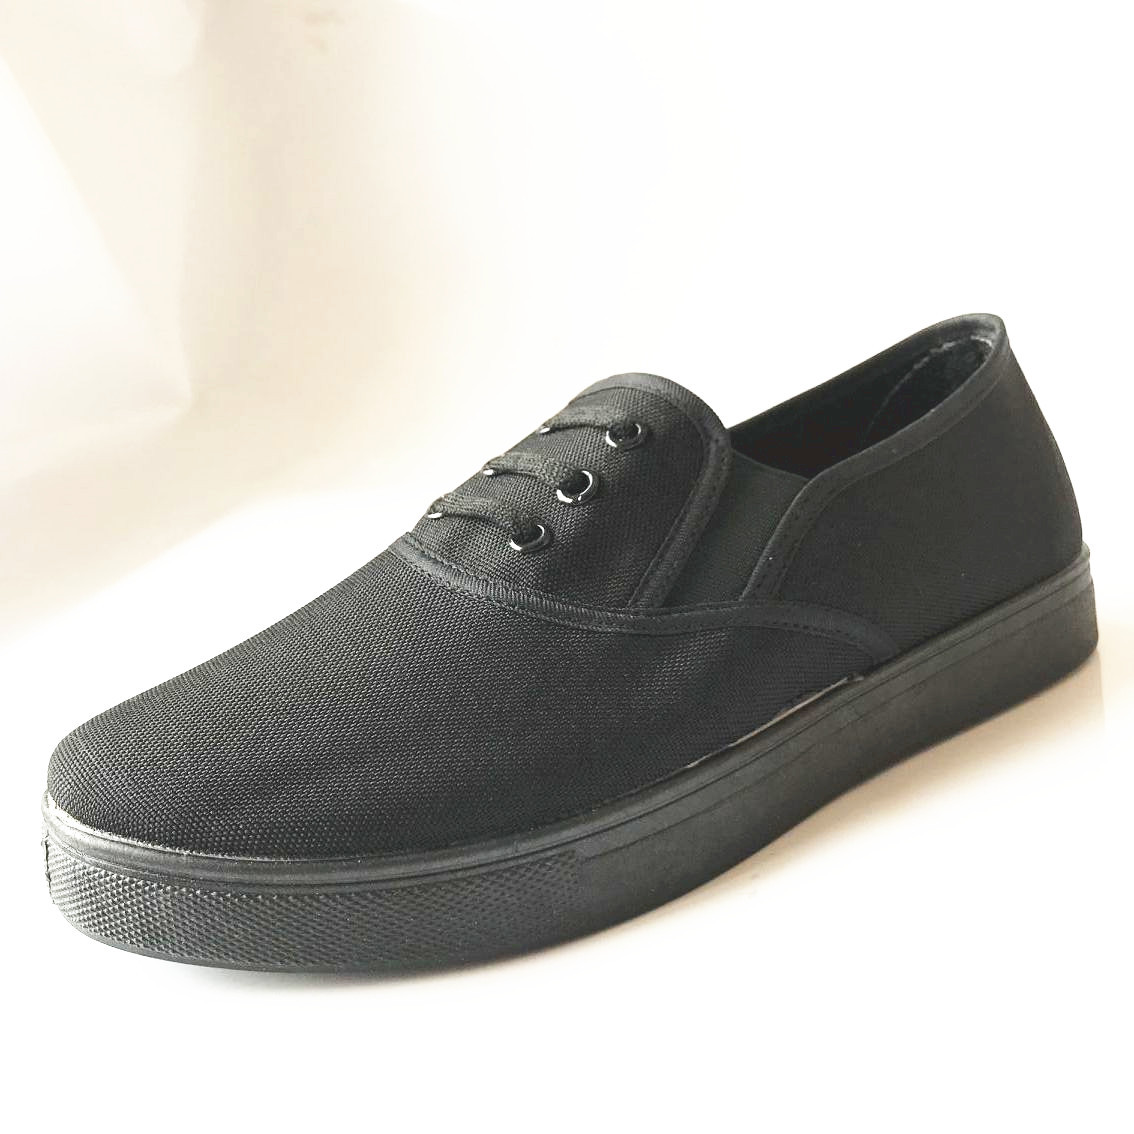 Yong shu Wear Wear See-New 87 Cloth Shoes Gas Canvas Shoes Rubber Sole Men Casual Shoes Elastic Band Mouth